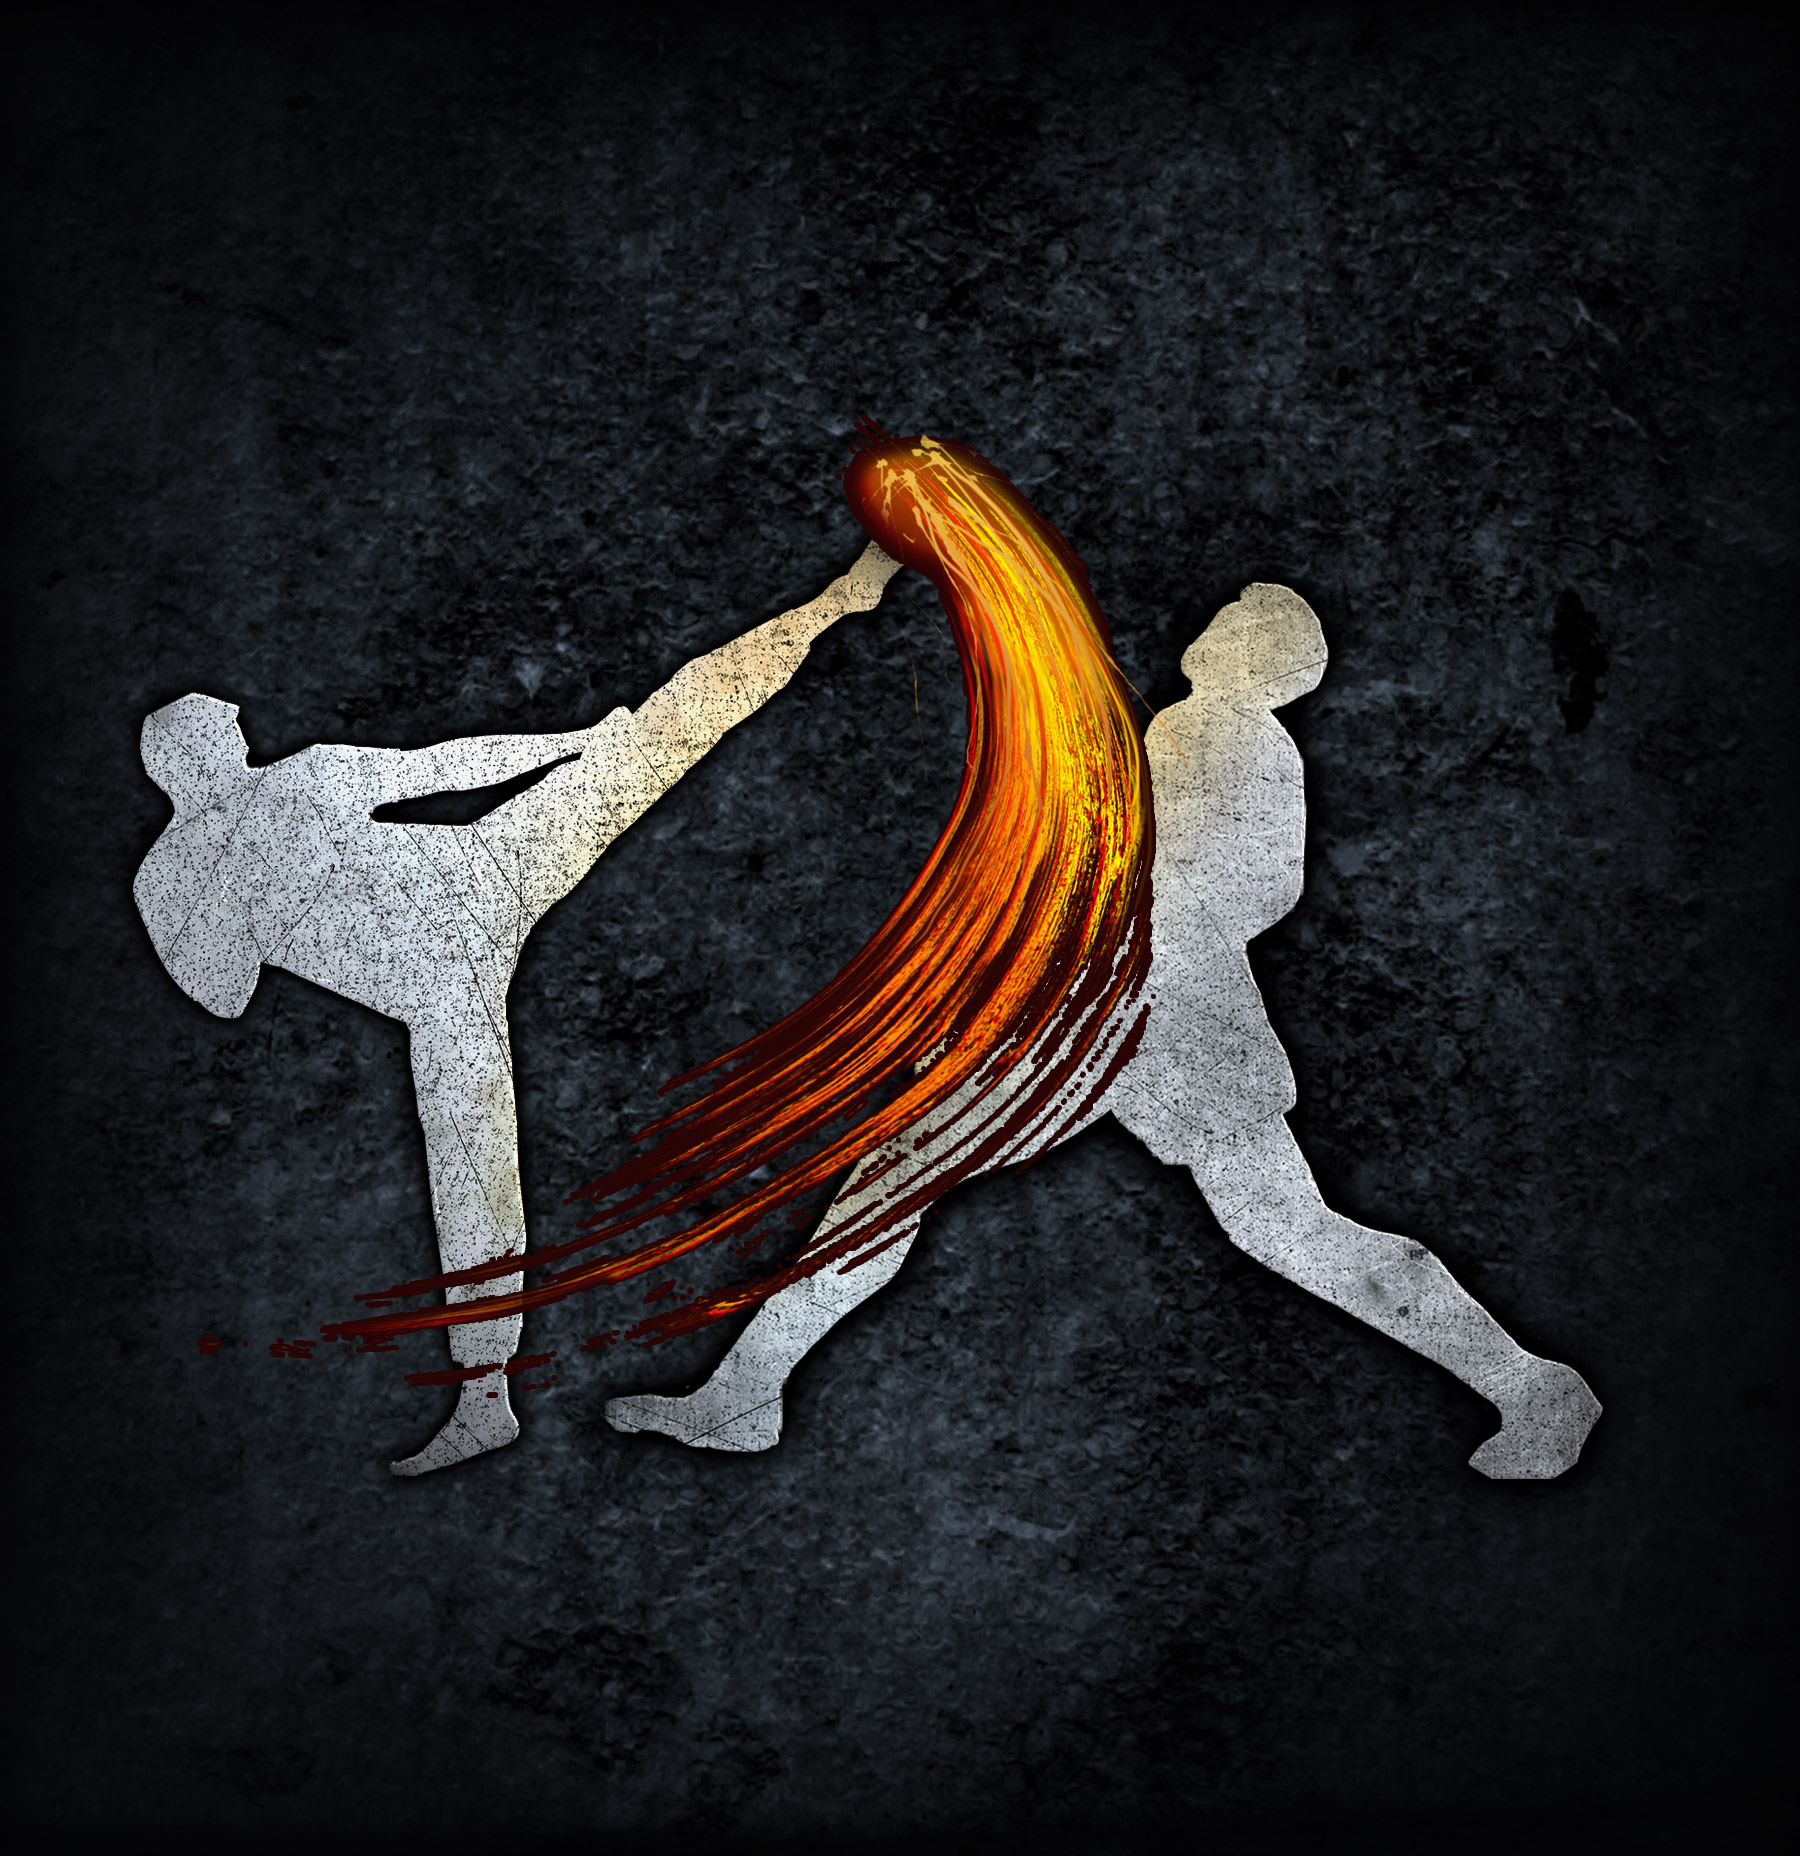 Modern Martial Artist Youtube Channel